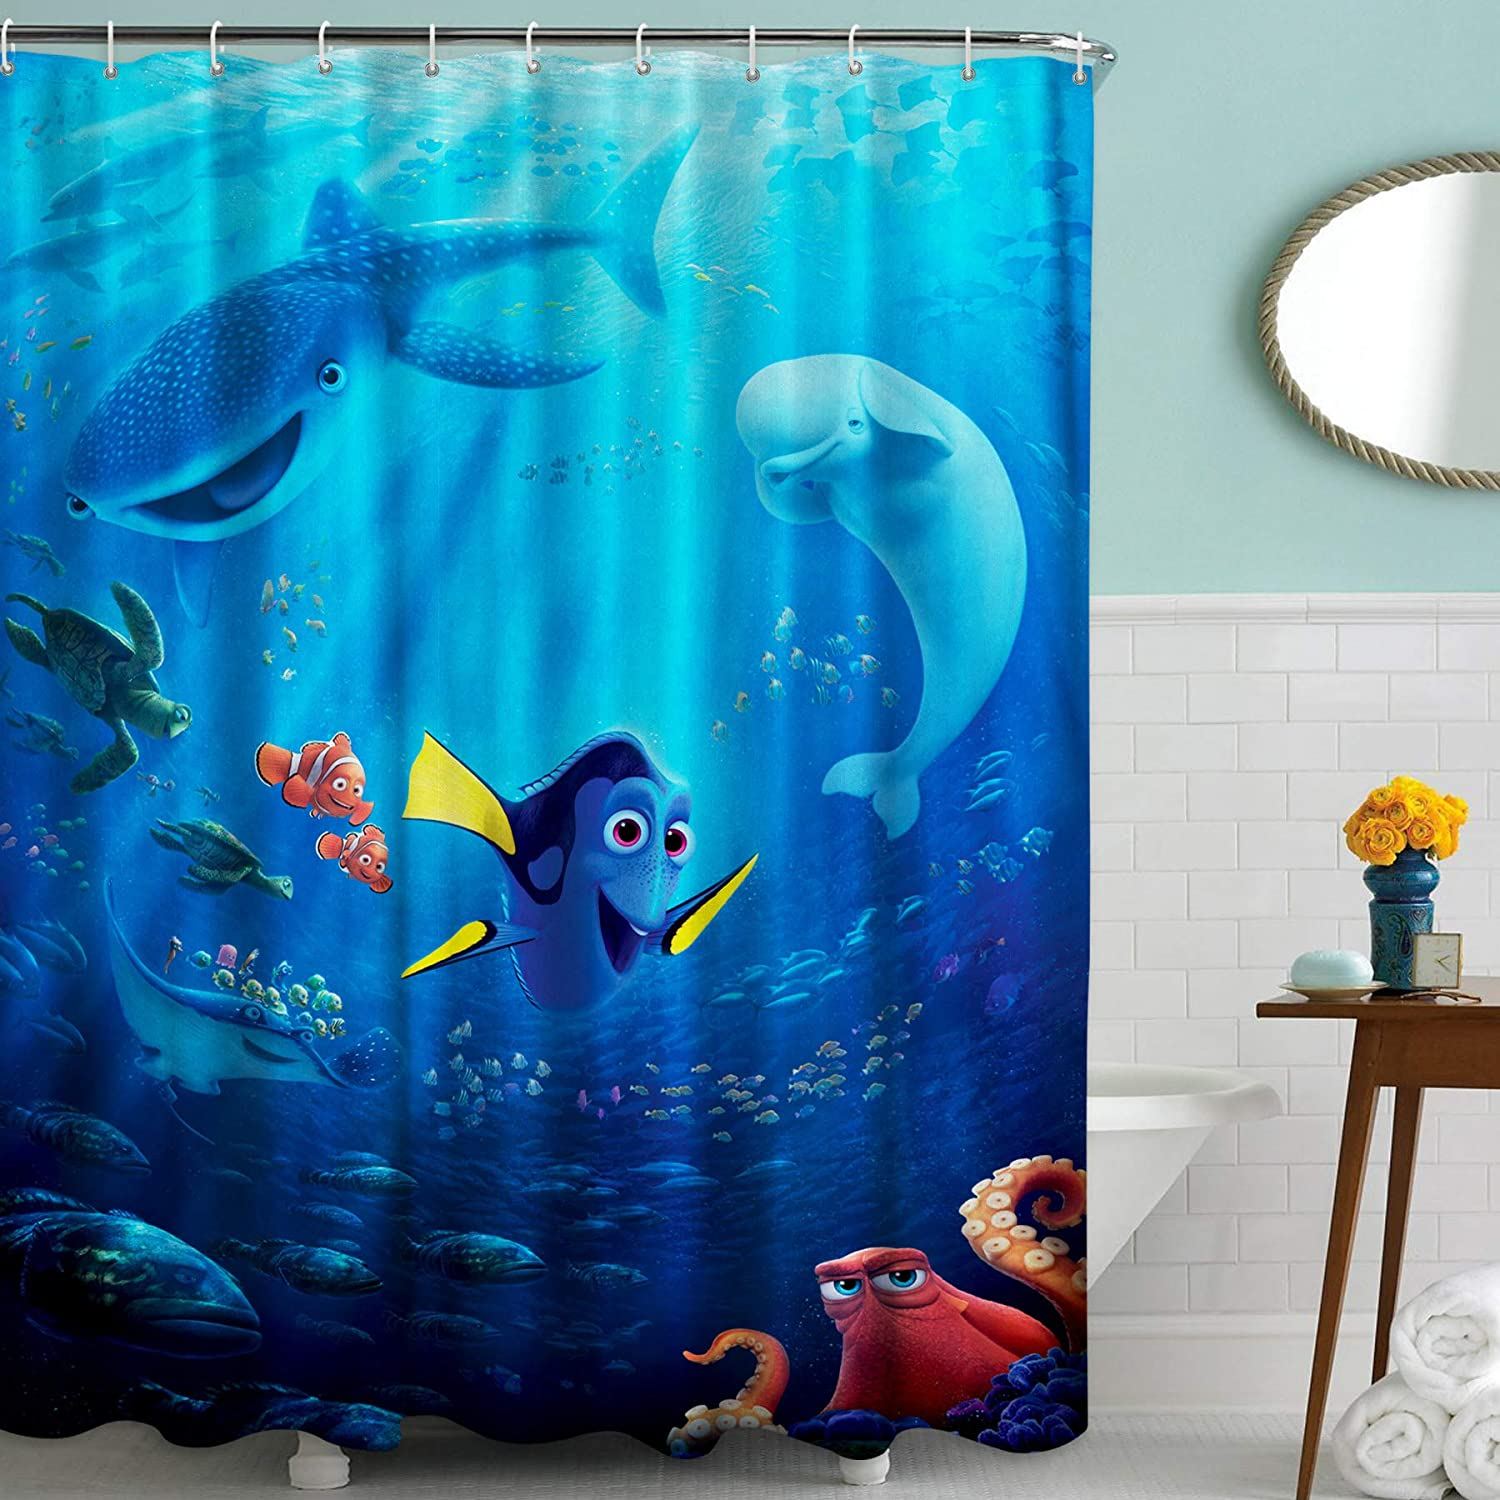 Disney Finding Dory Fabric Shower Curtain Set with Hooks for Boys and Girls Bathroom, 72in